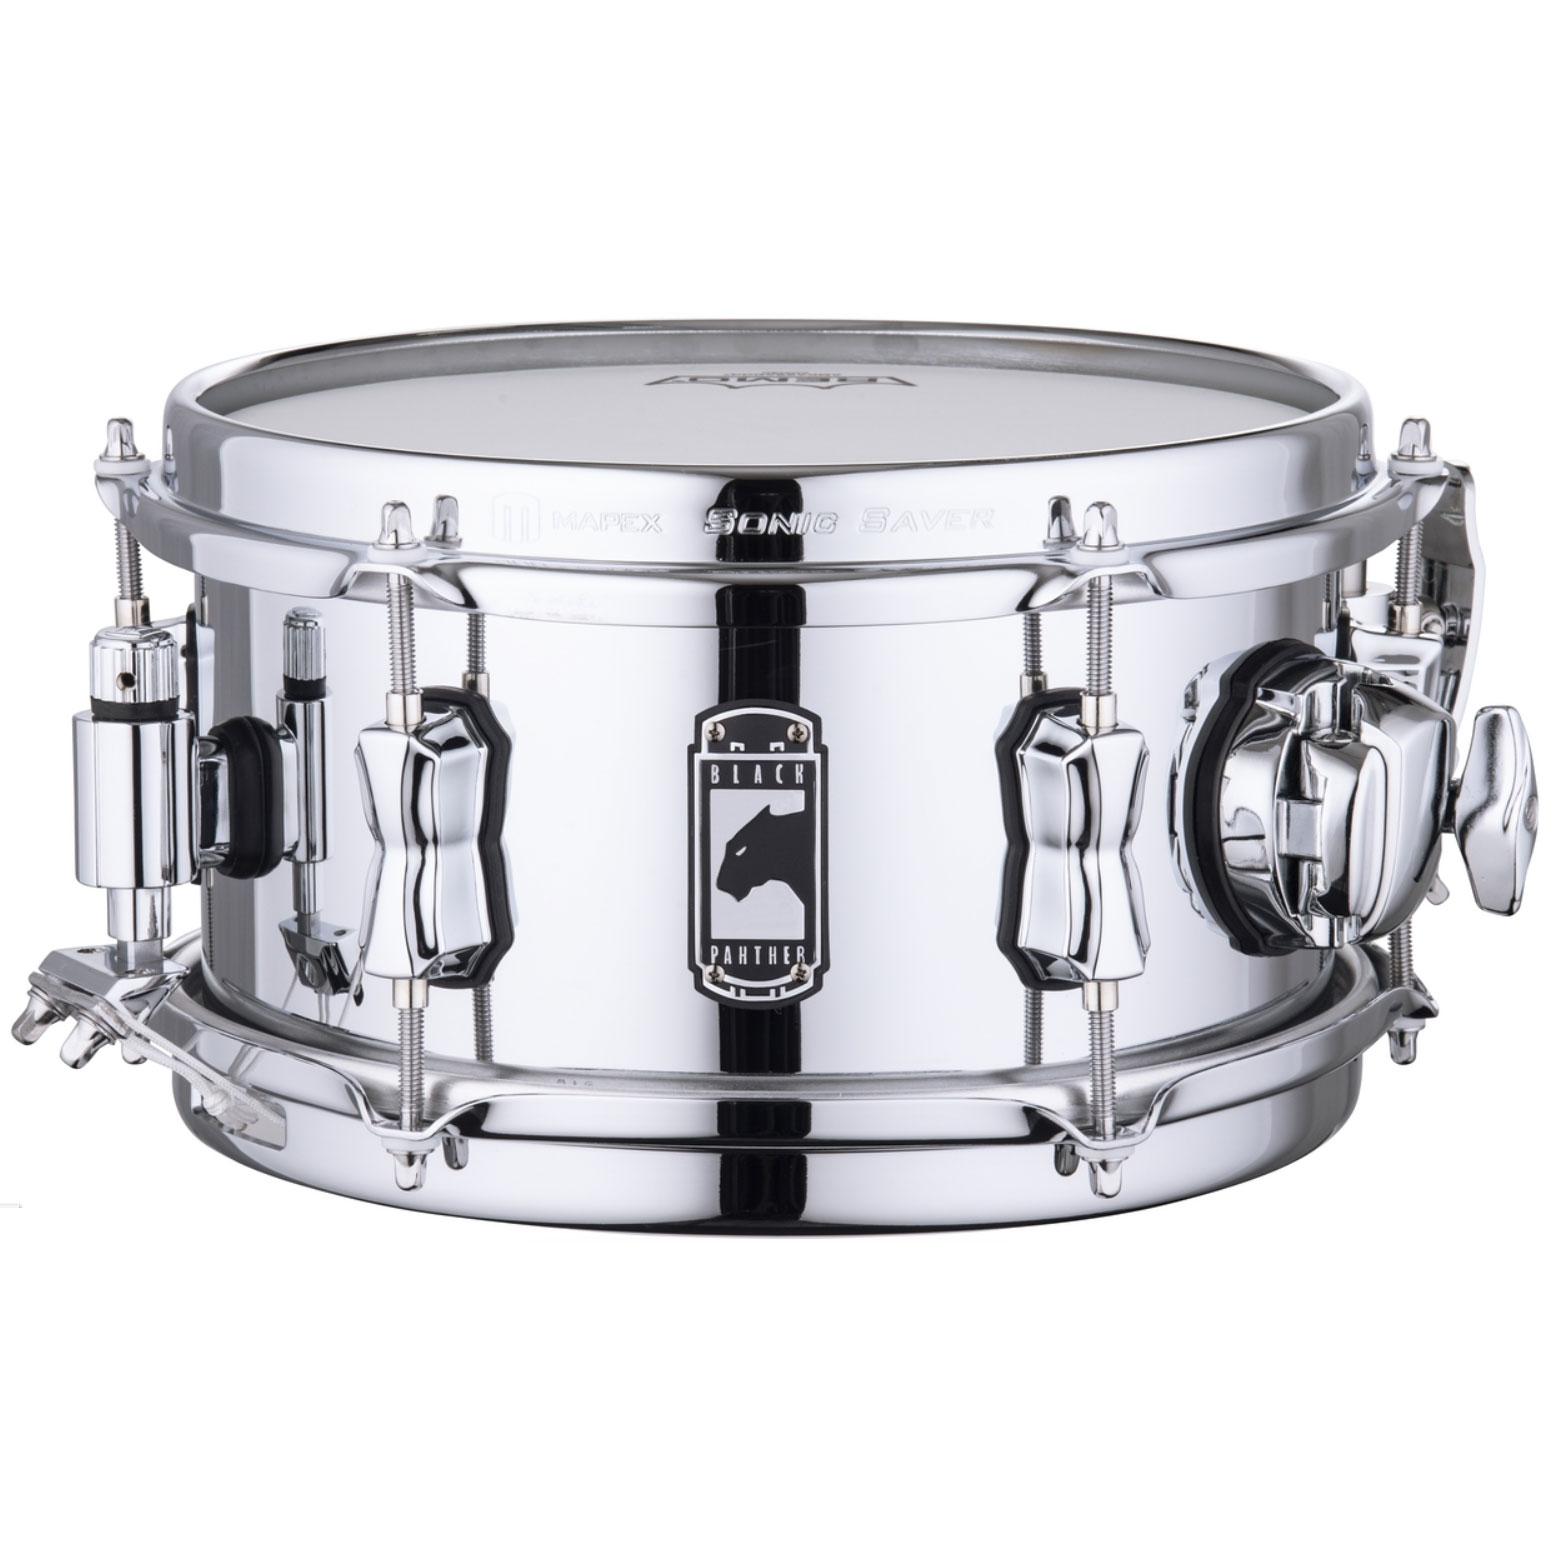 """Mapex 10"""" x 5.5"""" Black Panther """"Wasp"""" 1.0mm Seamed Steel Snare Drum"""